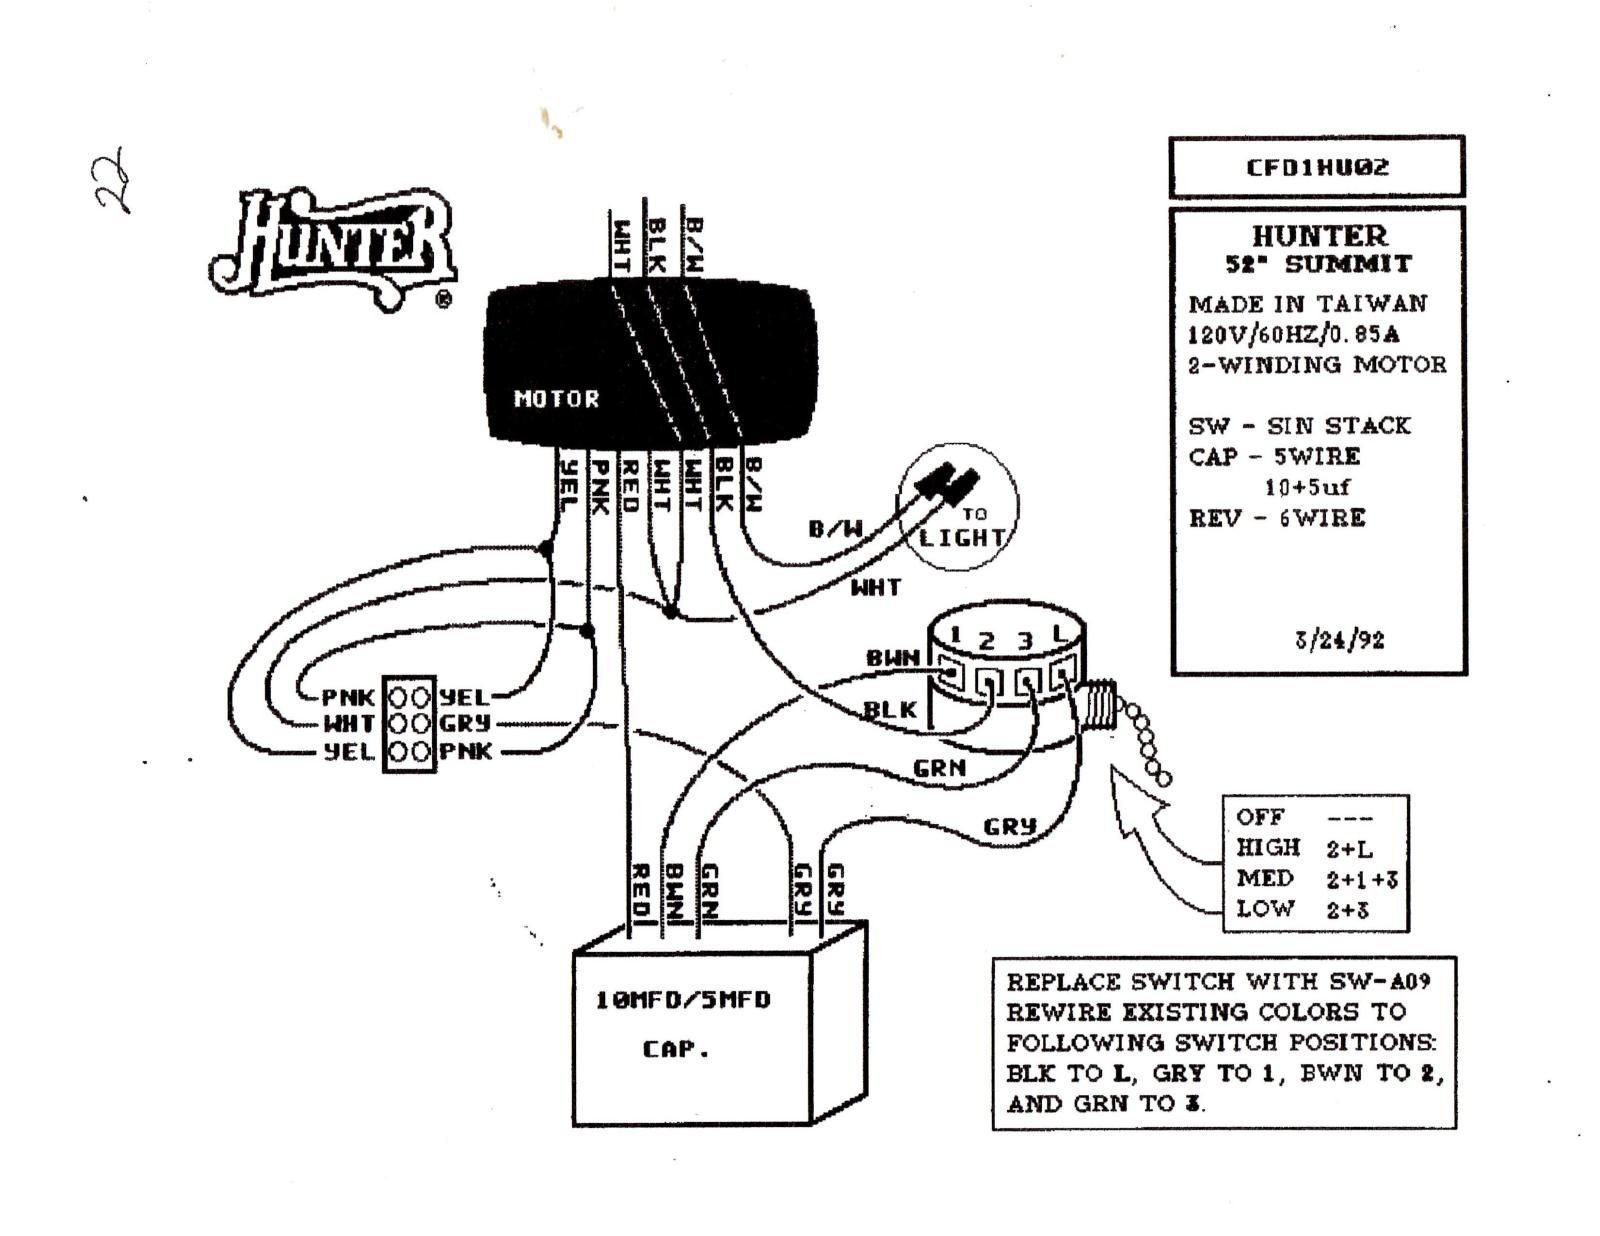 hunter ceiling fan 3 way switch wiring diagram Download-4 Wire Ceiling Fan Switch Wiring Diagram New Wiring Diagram for Ceiling Fan Switch New Hunter 9-t